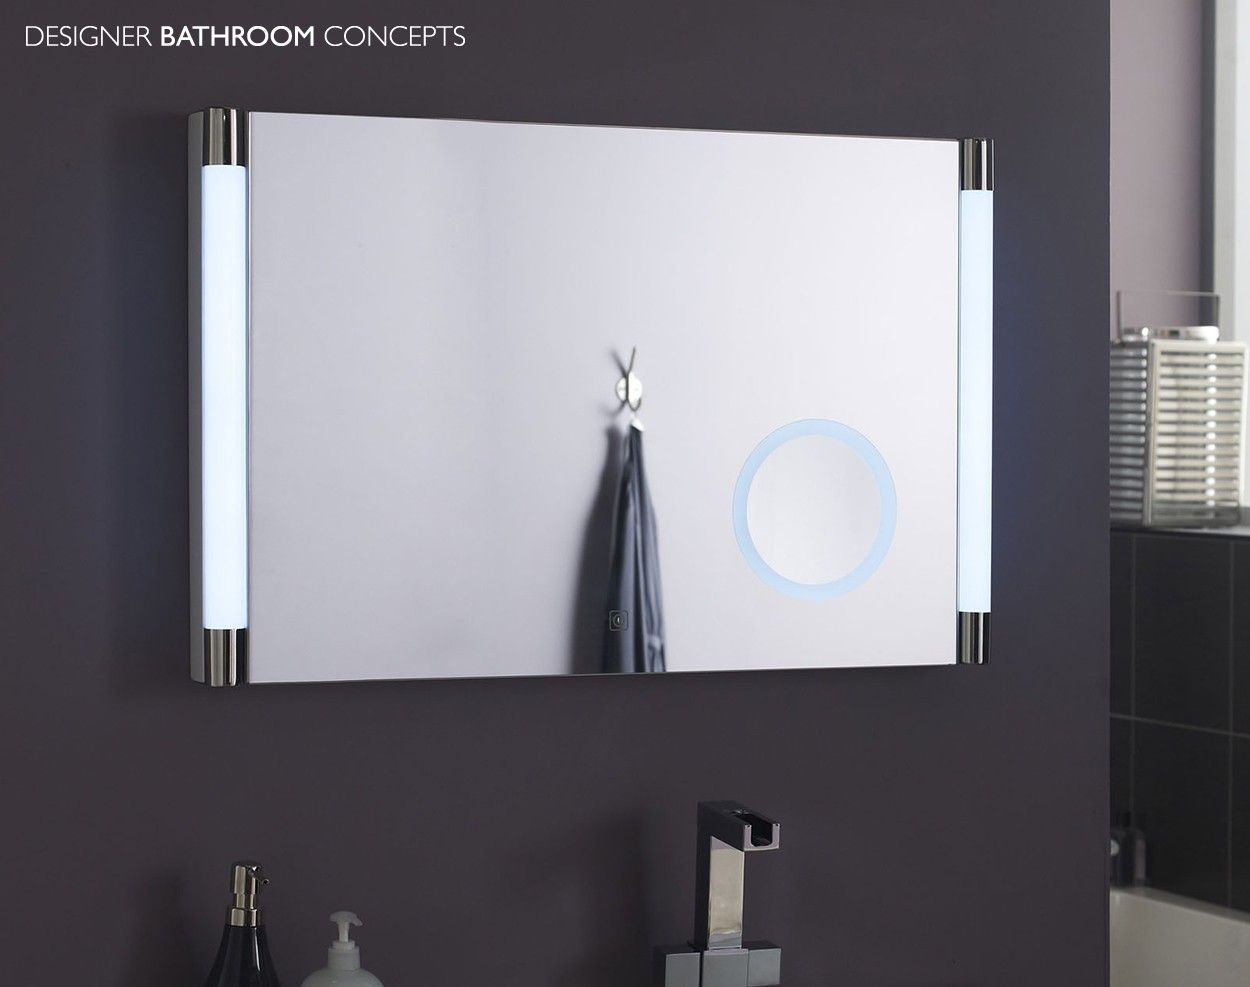 17 Best images about Bathroom Mirrors on Pinterest   Radios  UX UI Designer  and Flare. 17 Best images about Bathroom Mirrors on Pinterest   Radios  UX UI